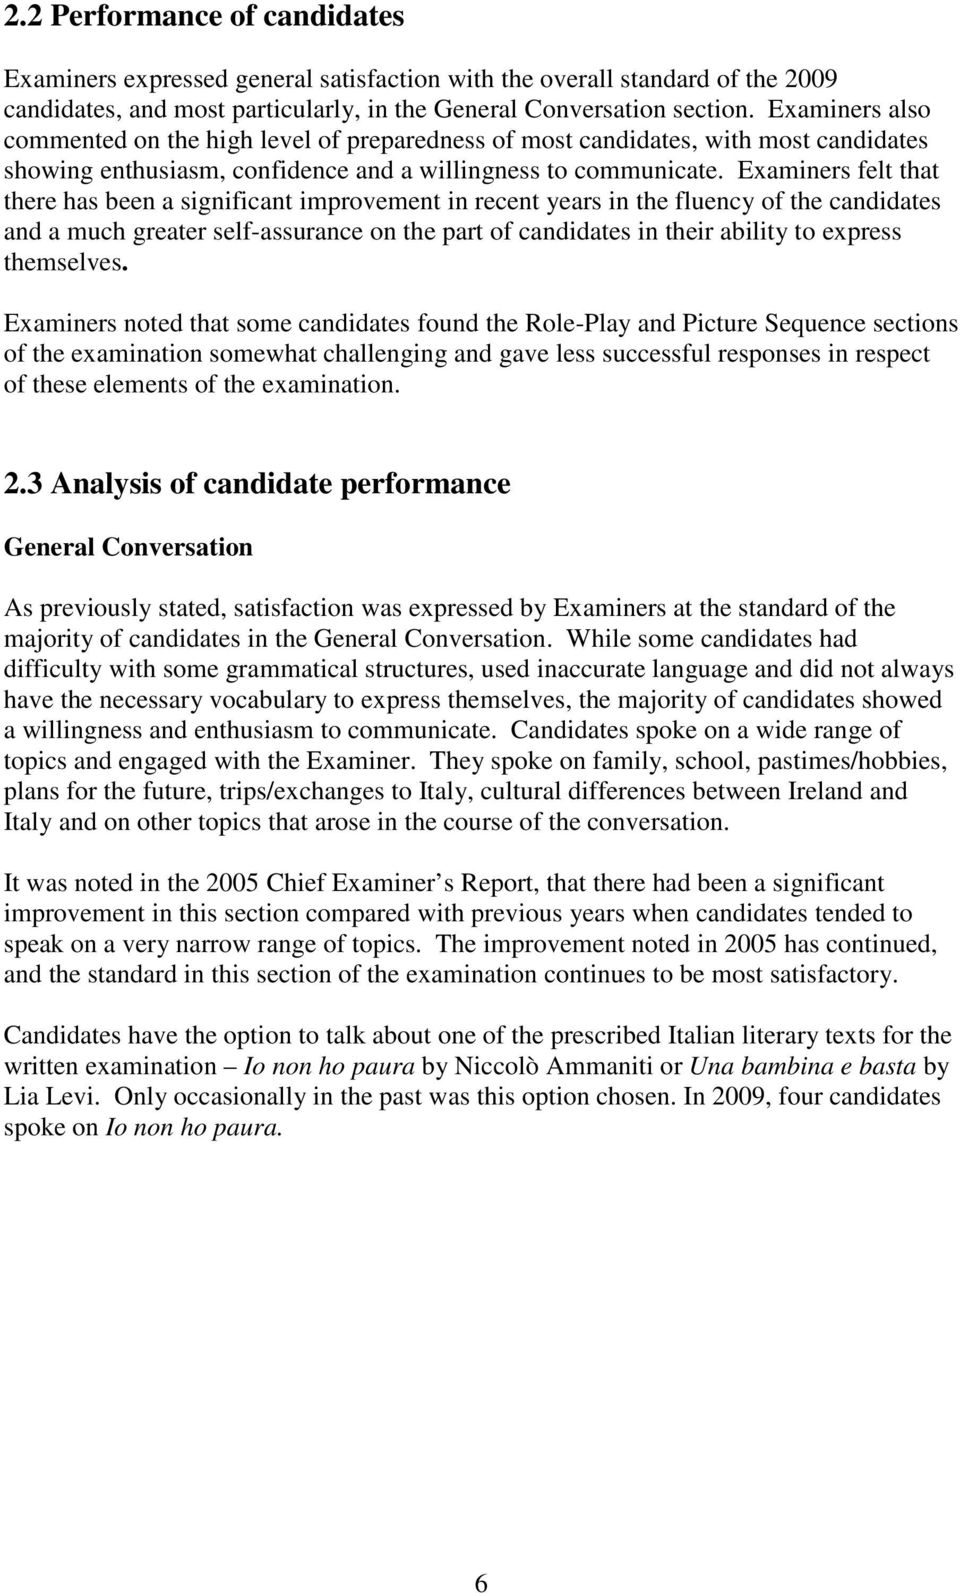 Examiners felt that there has been a significant improvement in recent years in the fluency of the candidates and a much greater self-assurance on the part of candidates in their ability to express